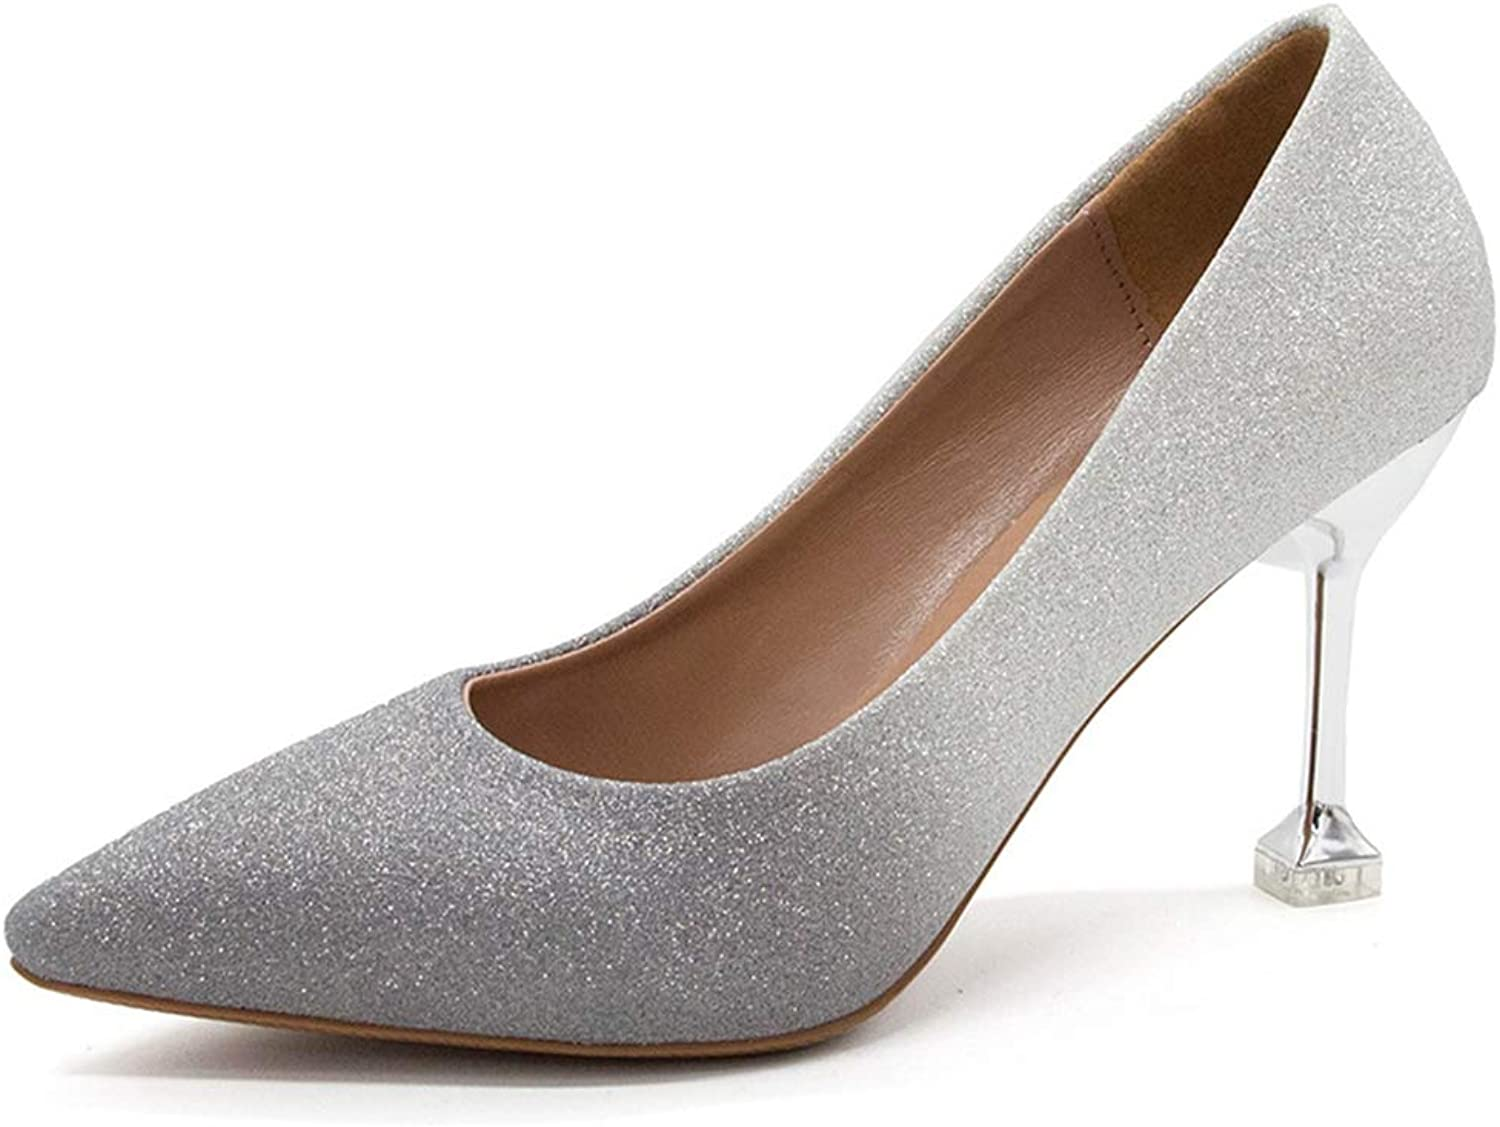 Women's Pump,Sequin Kitten Heel Pointed-Toe Champagne Wedding Party Pumps